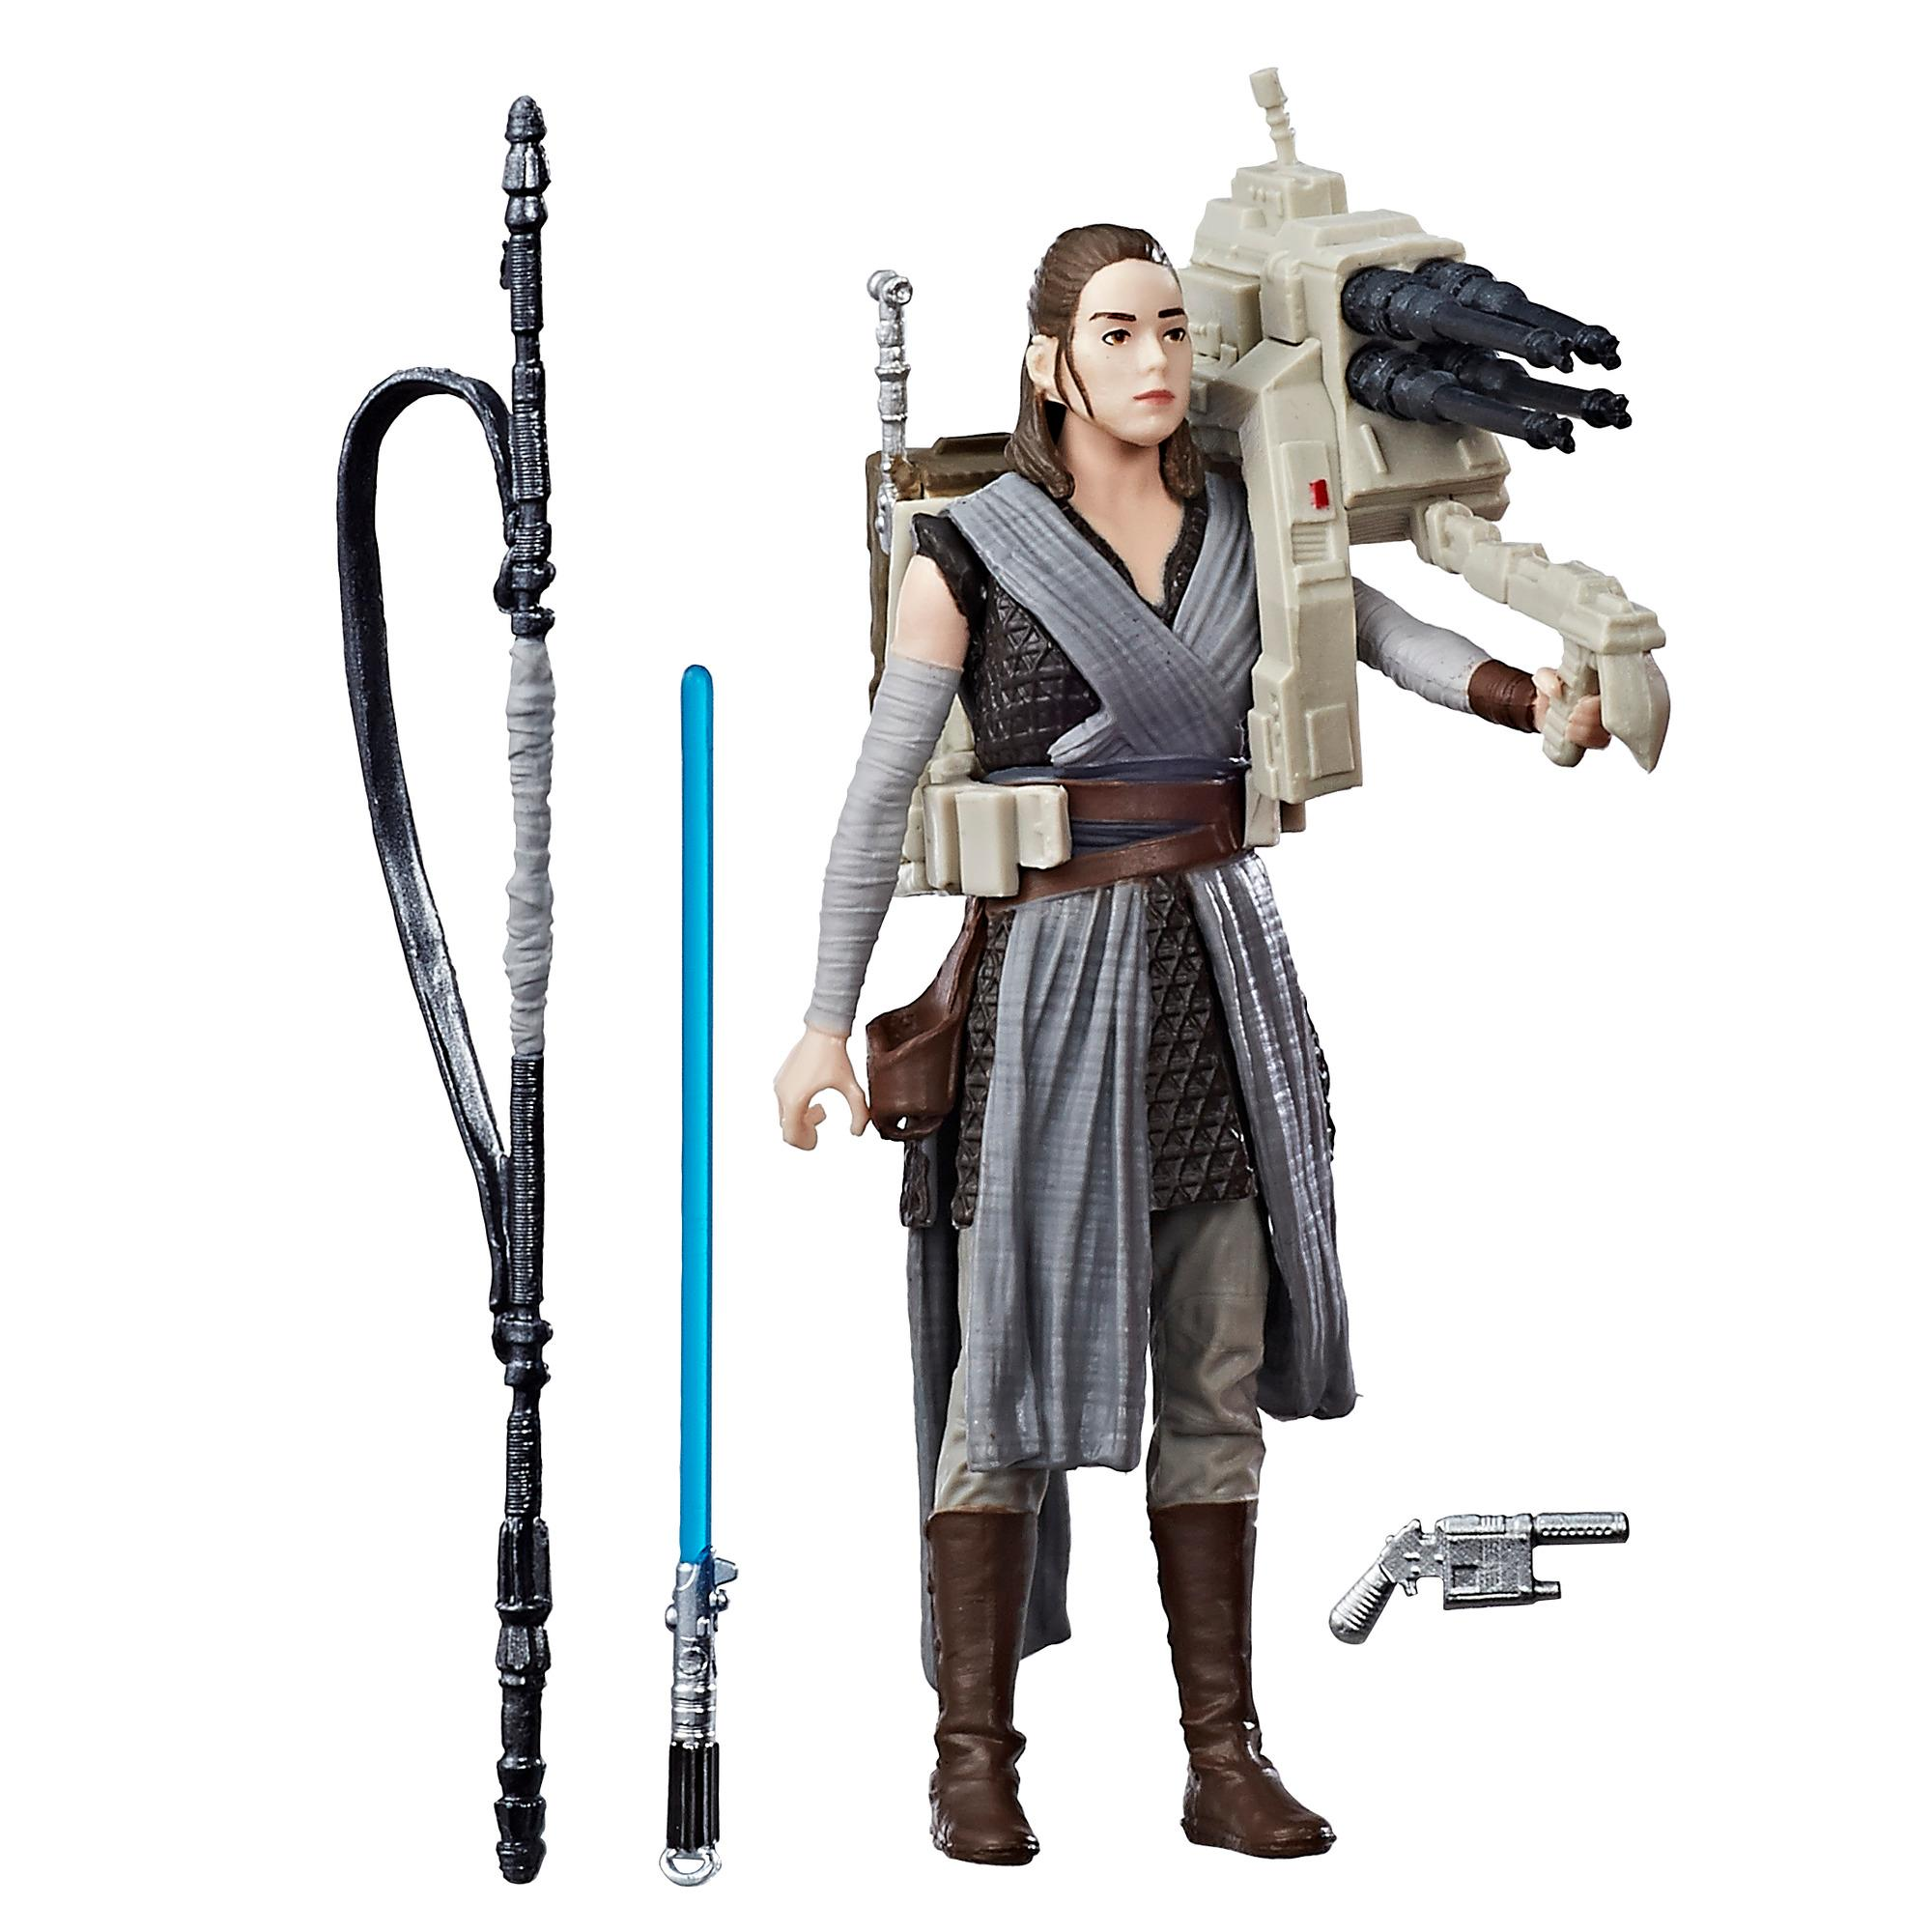 STAR WARS EPISODIO 8 DELUXE FIGURE 2-PACK 9CM REY JED TRAIN AND ELITE PRAE GUARD